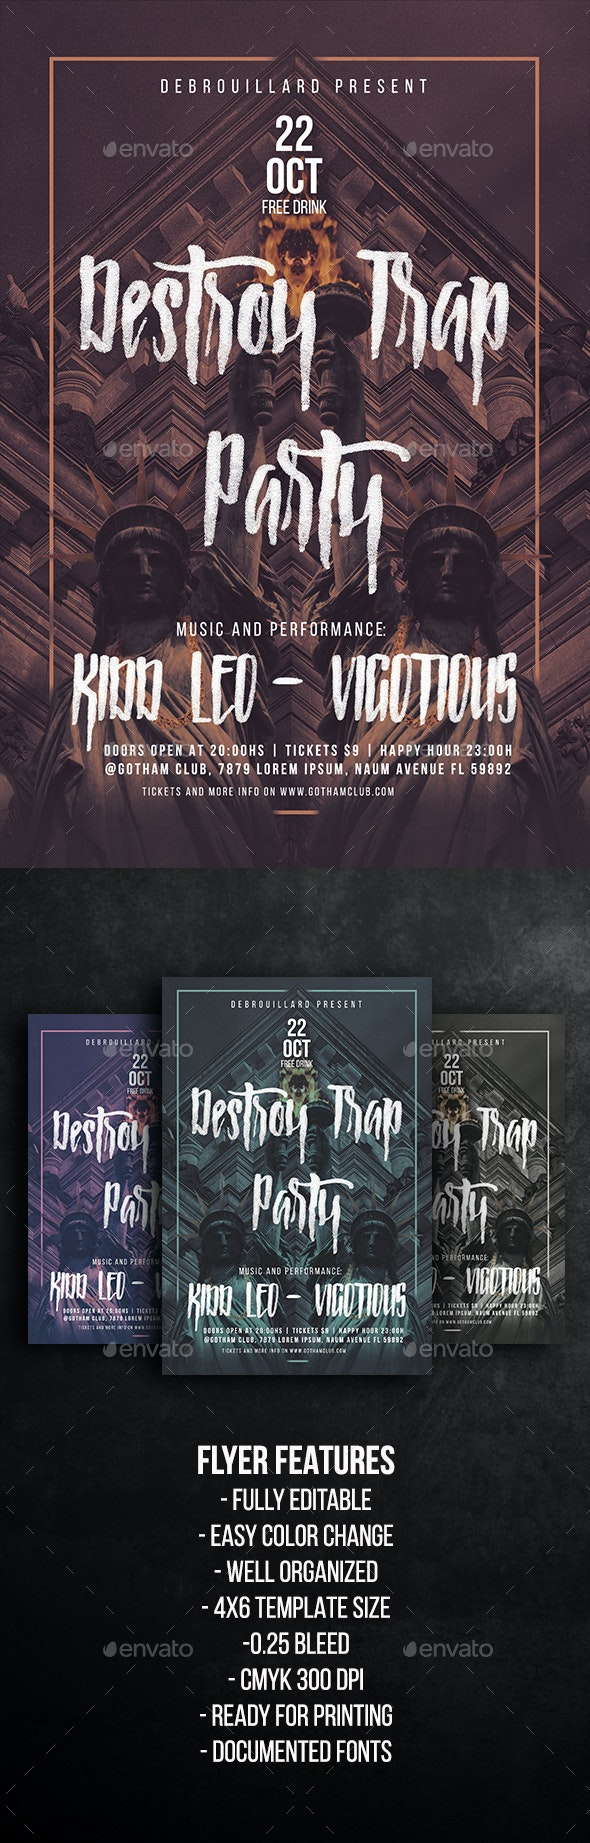 Destroy Trap Party Flyer Template - Clubs & Parties Events